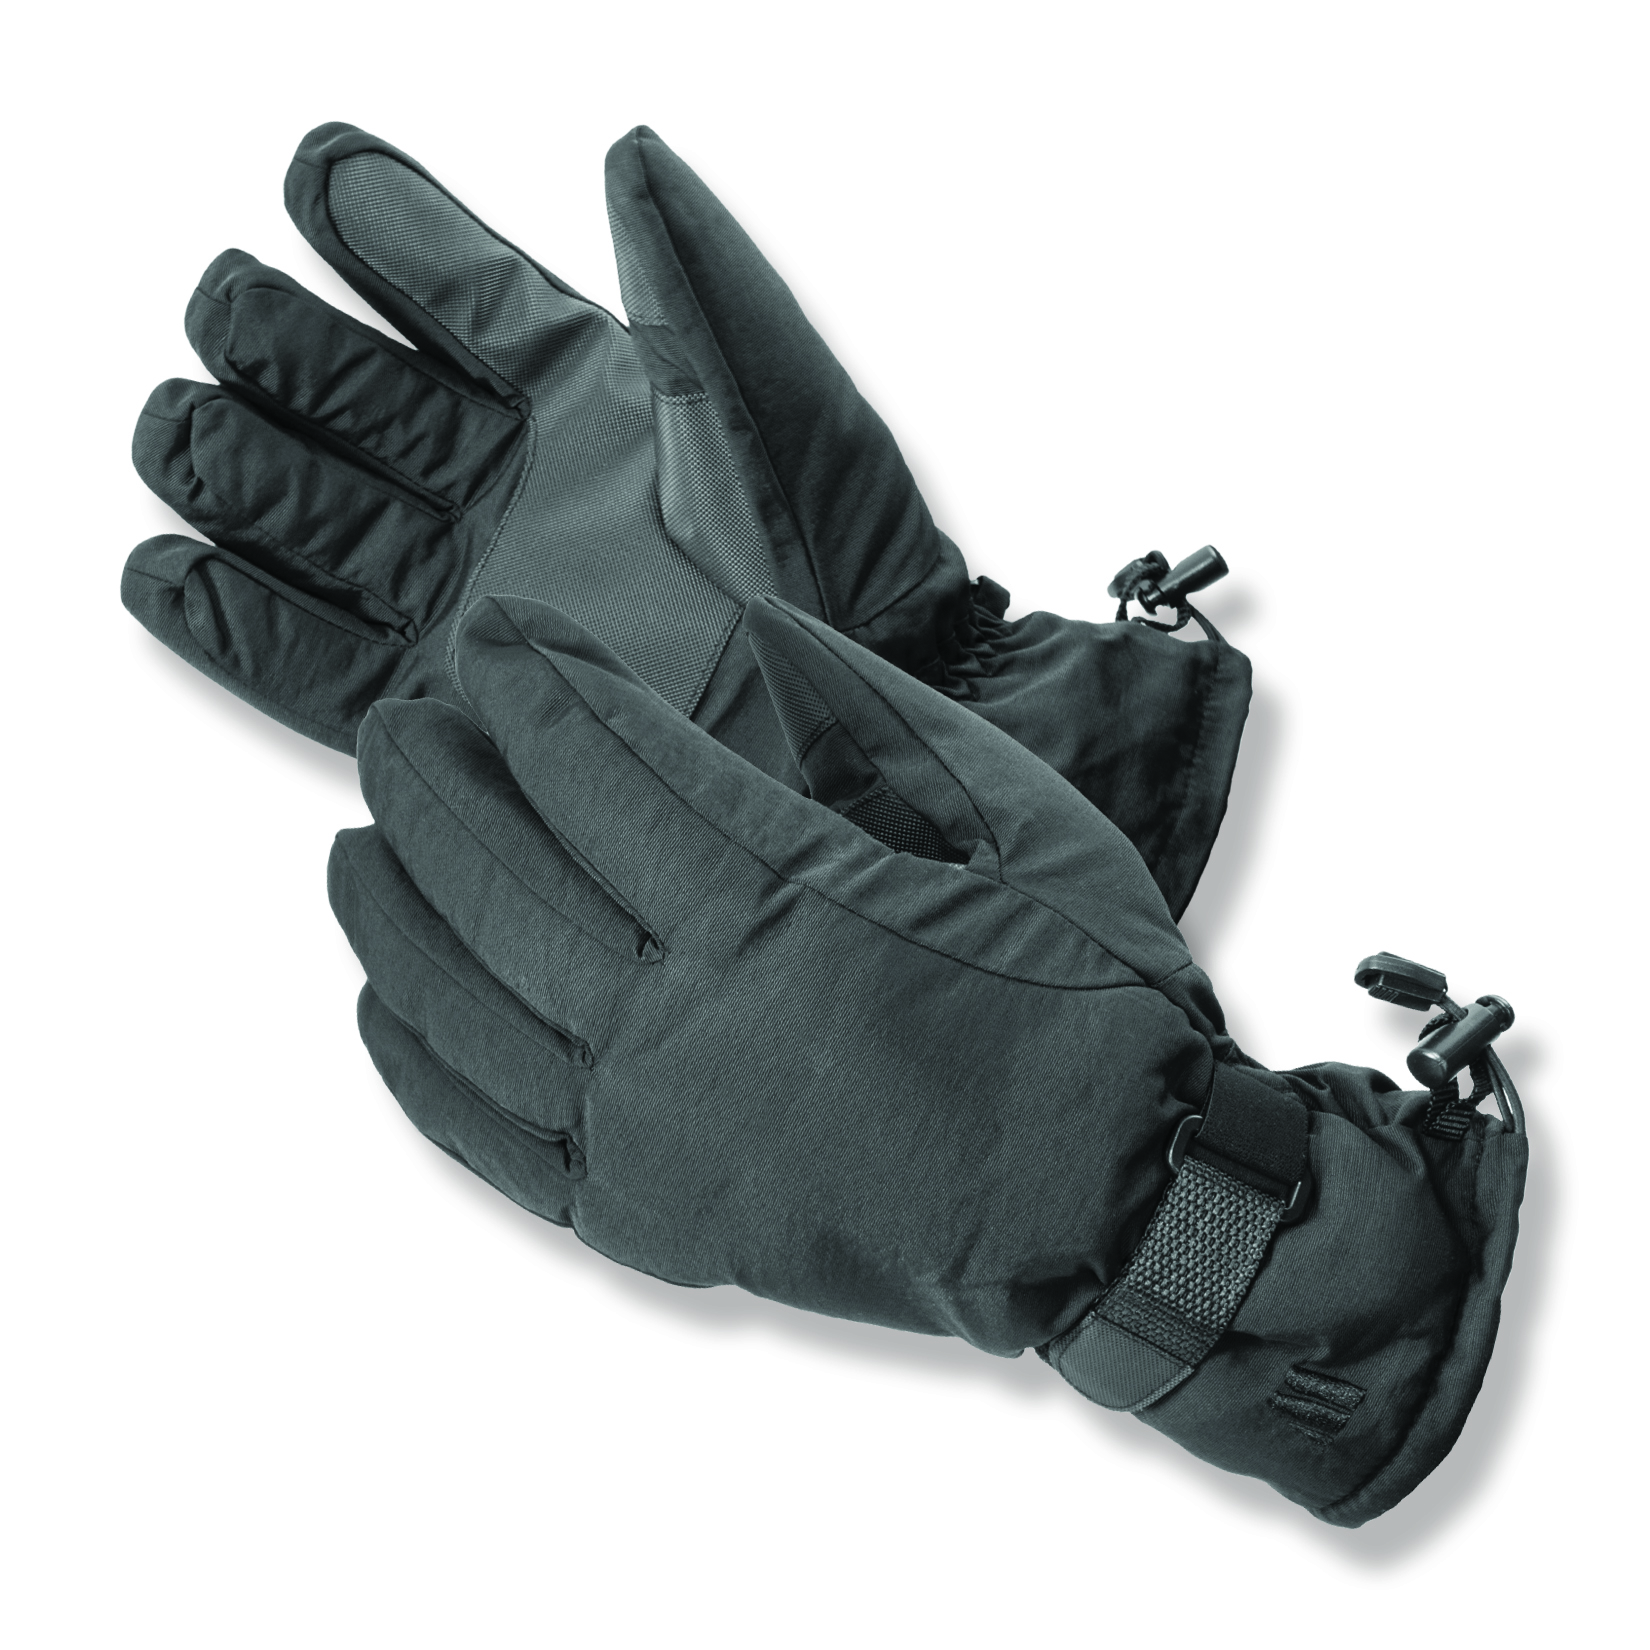 Arctek™ Blizzard Waterproof Insulated Gloves